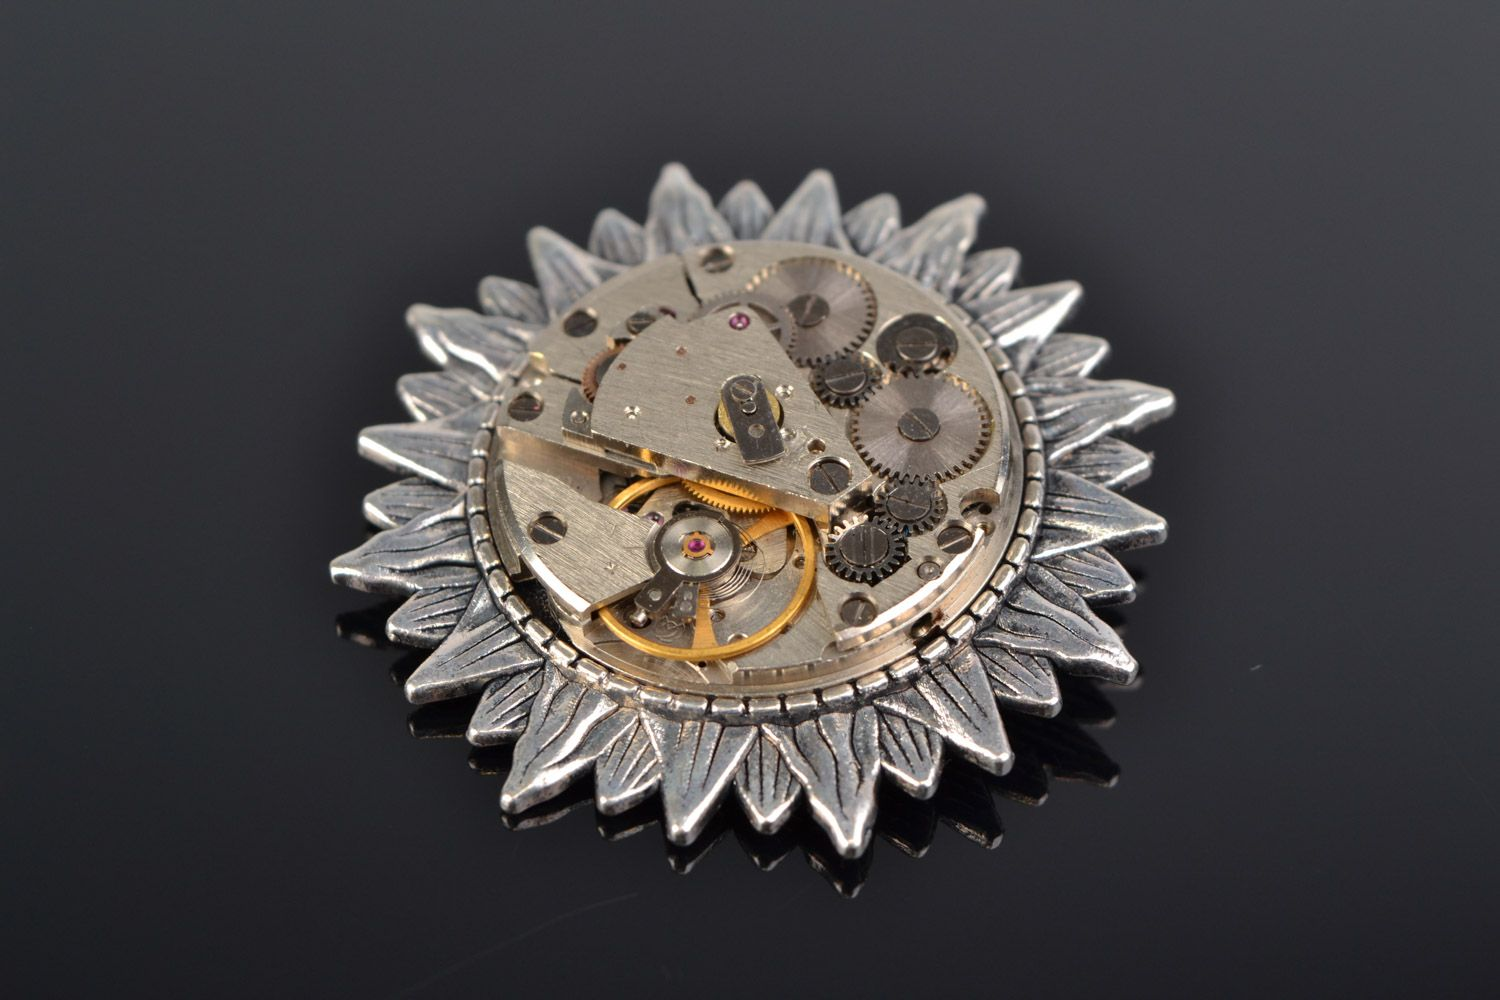 Handmade round brooch with metal basis and clock mechanism in steampunk style photo 1